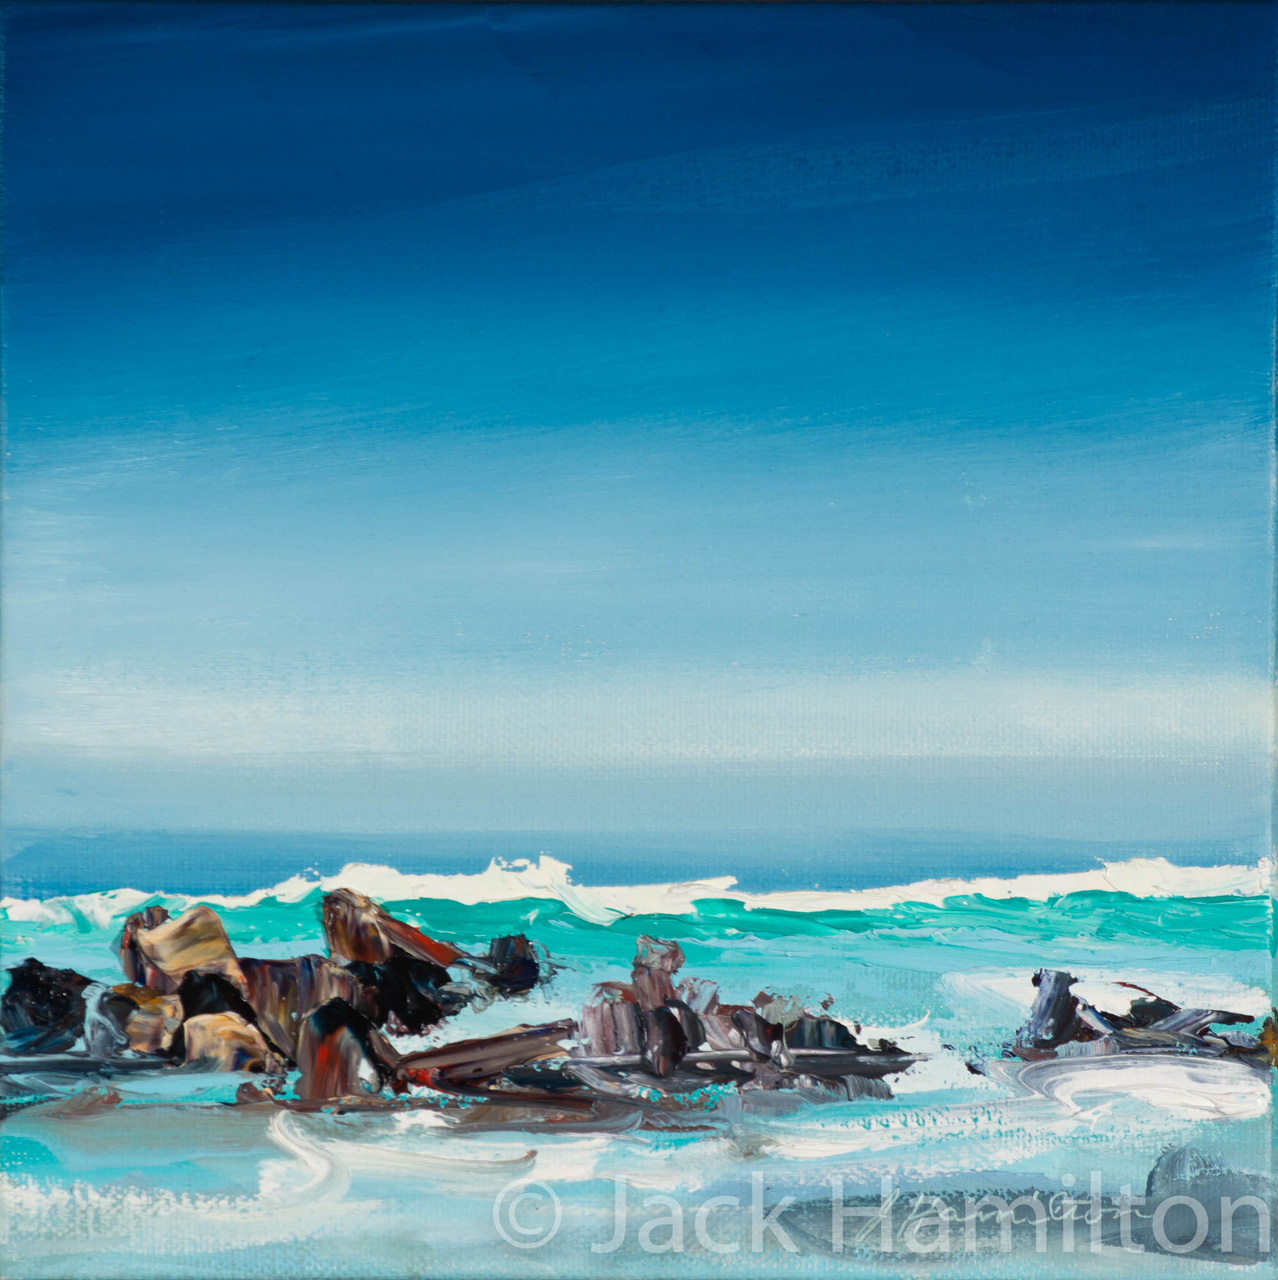 Keanae Breaking Wave by Jack Hamilton oil on canvas